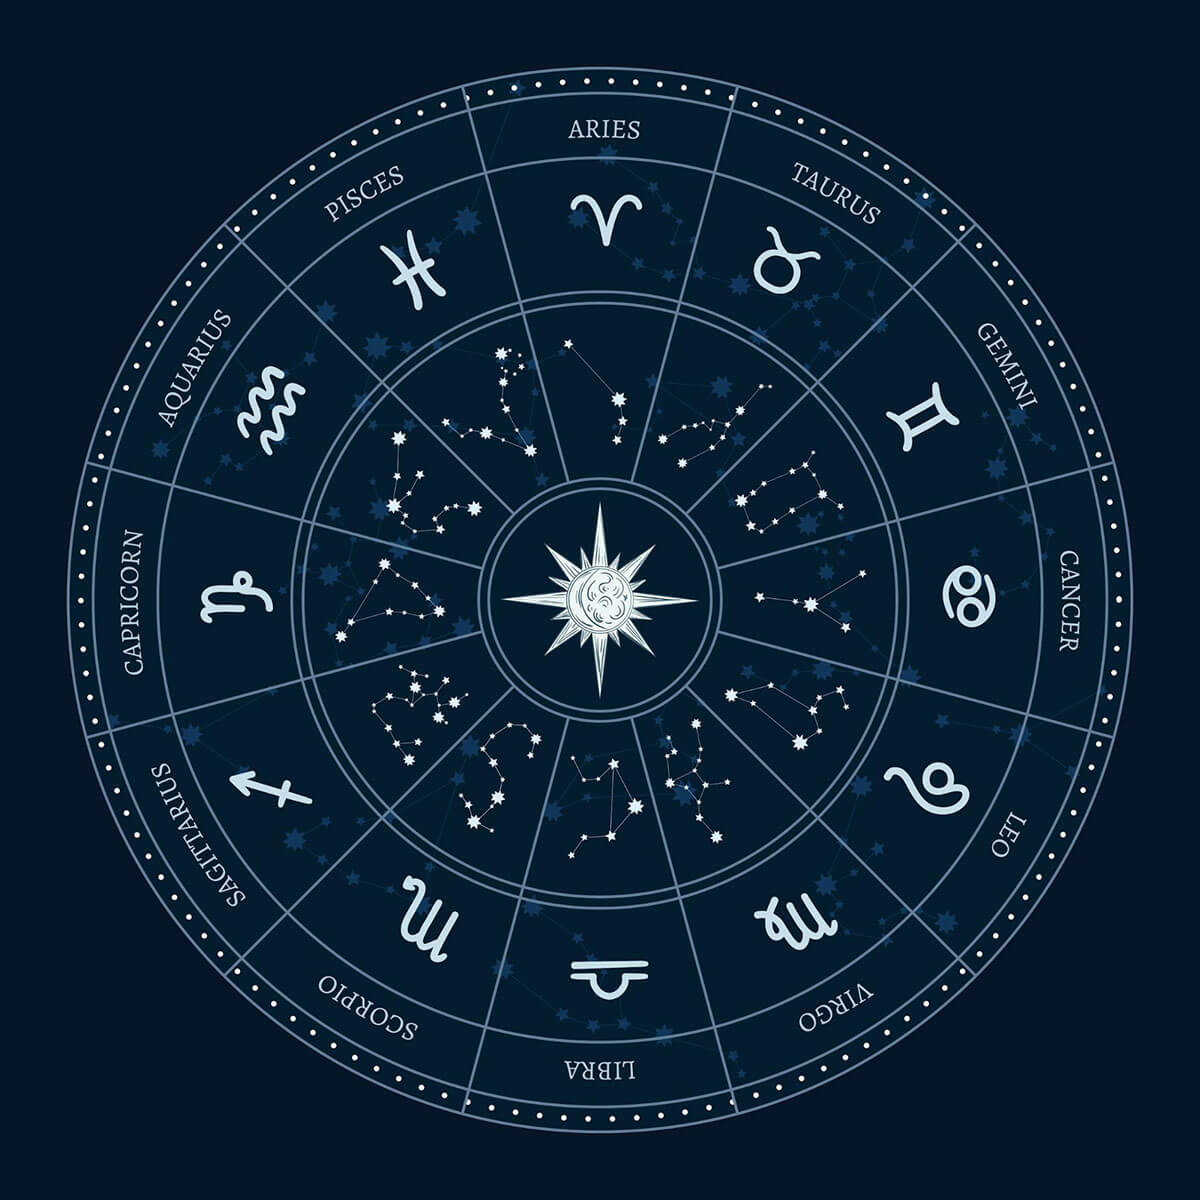 Which Ruling Planets Are Associated With the Zodiac Signs?